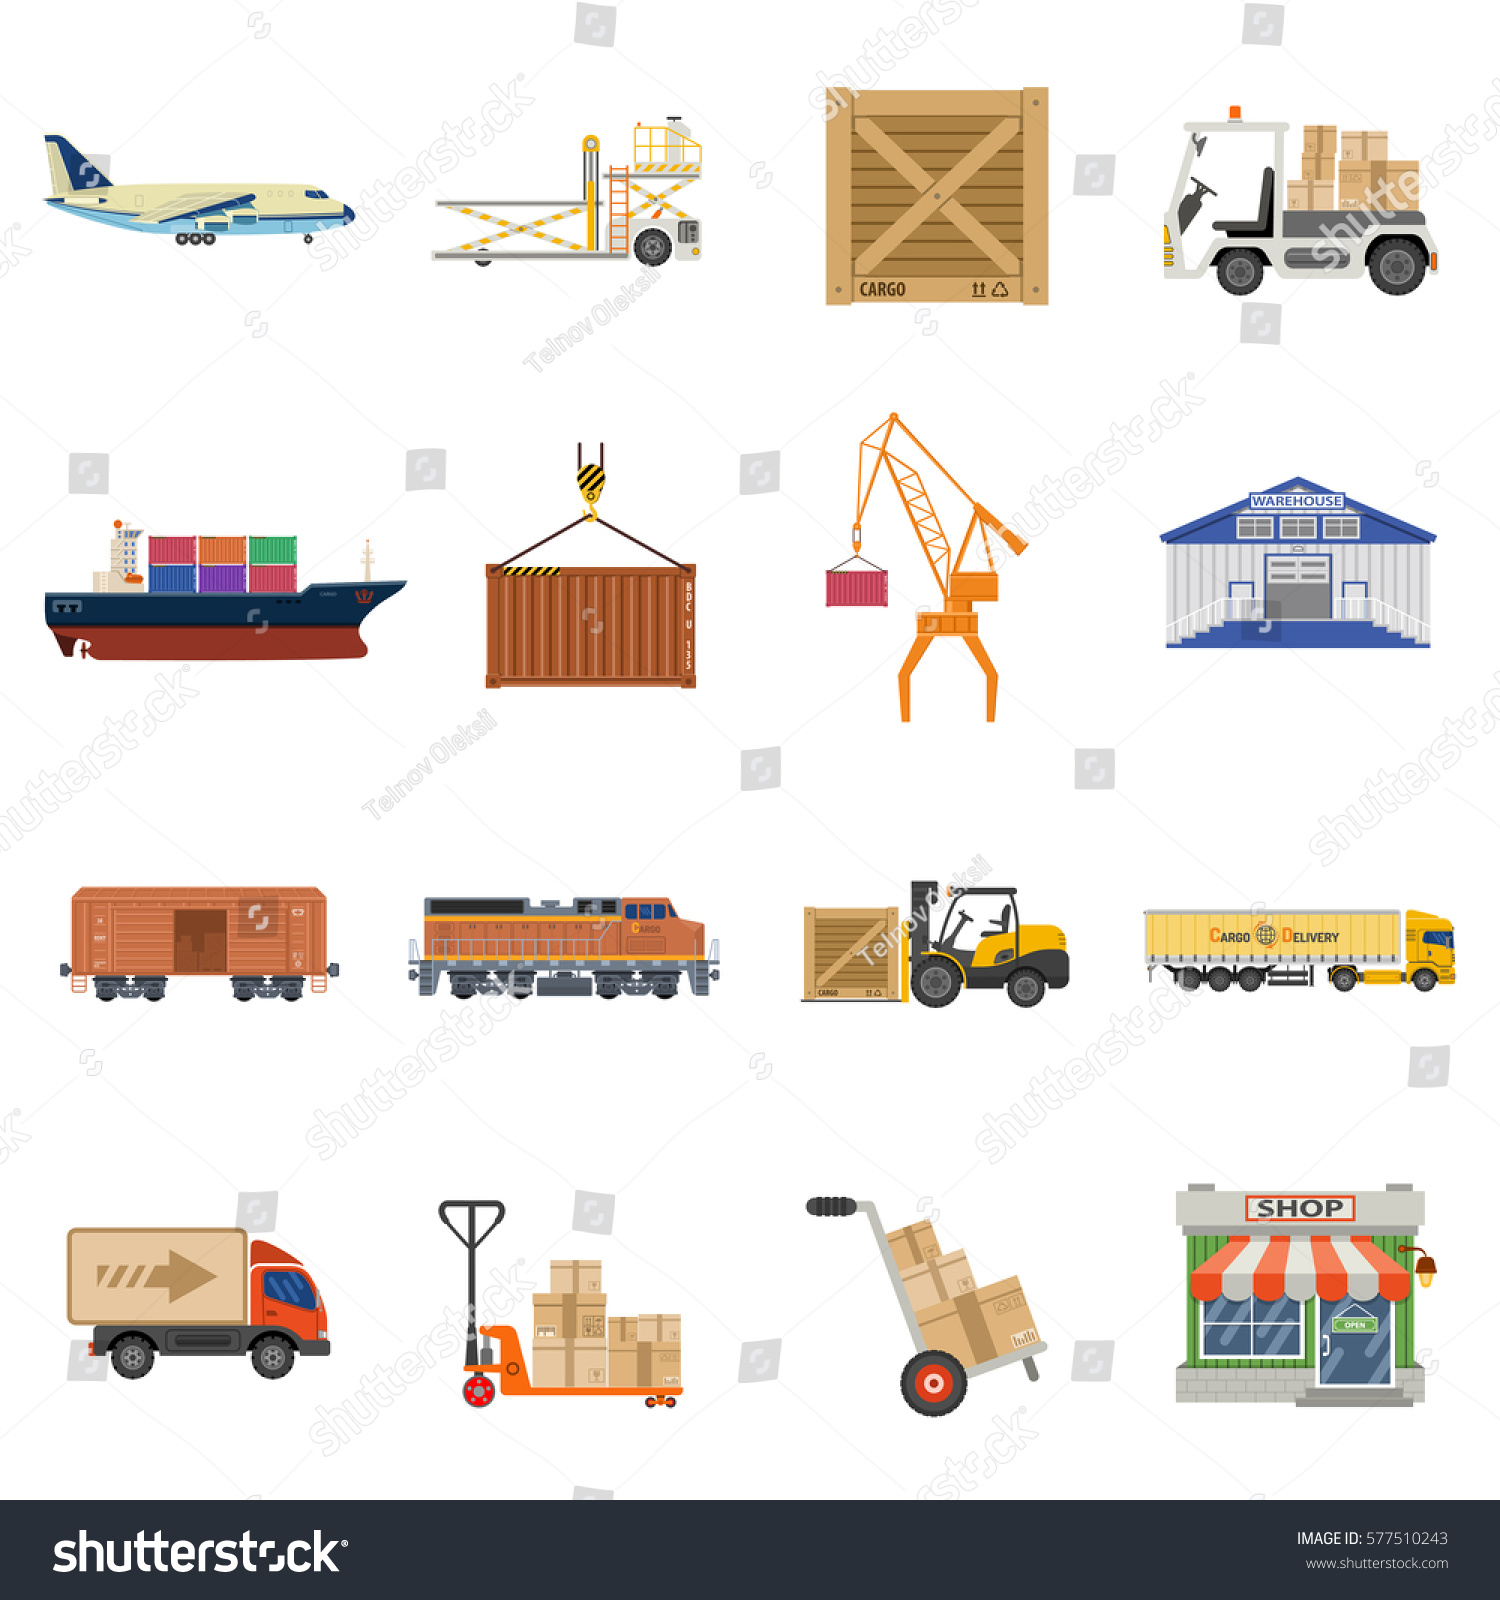 Shipping Delivery: Cargo Transport Packaging Shipping Delivery Logistics